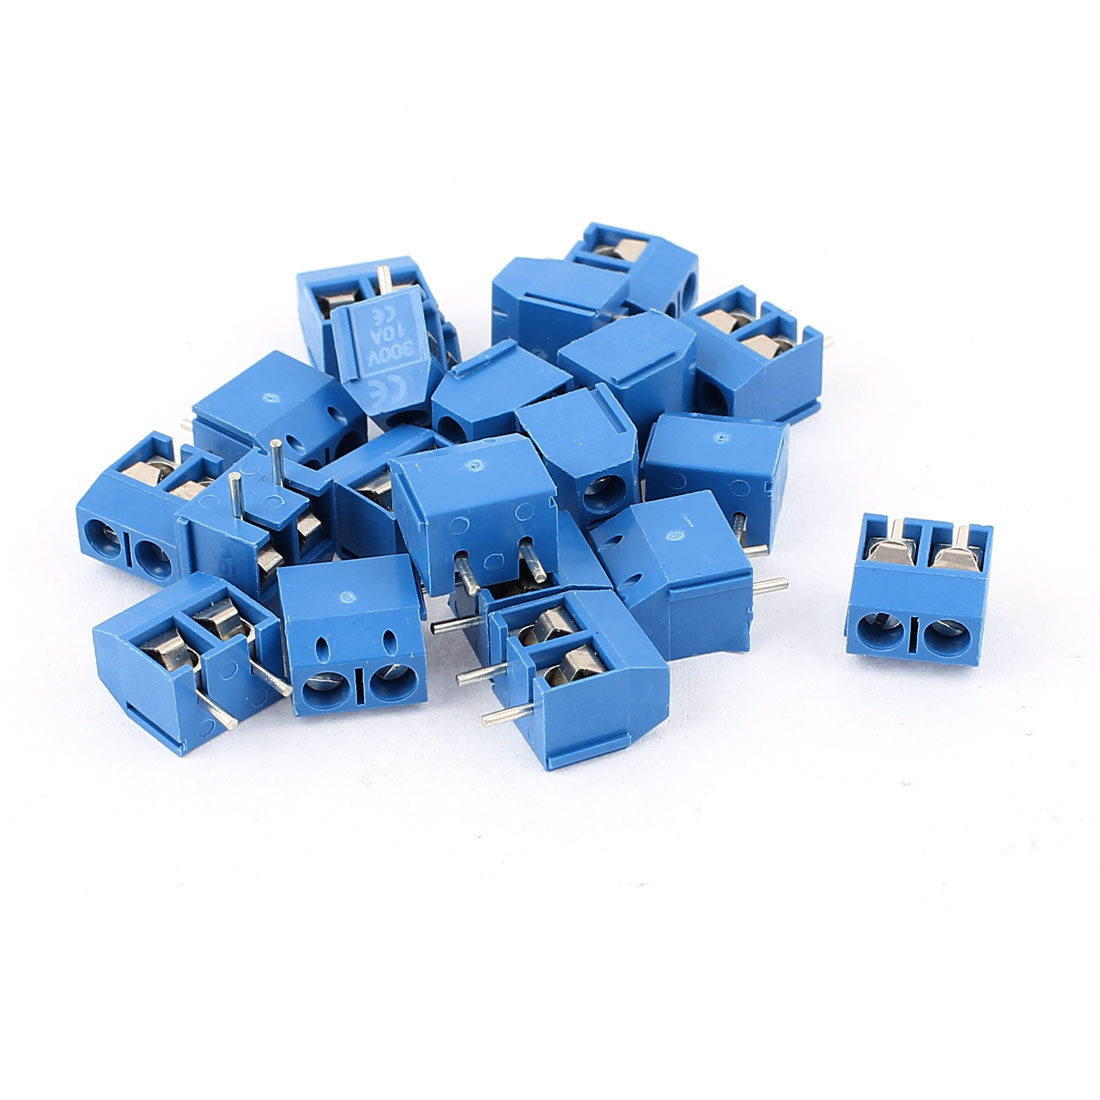 20PCS 300V 10A 2way 2-Terminal Plug-in Screw Terminal Block Connector 5mm Pitch Panel PCB Mount